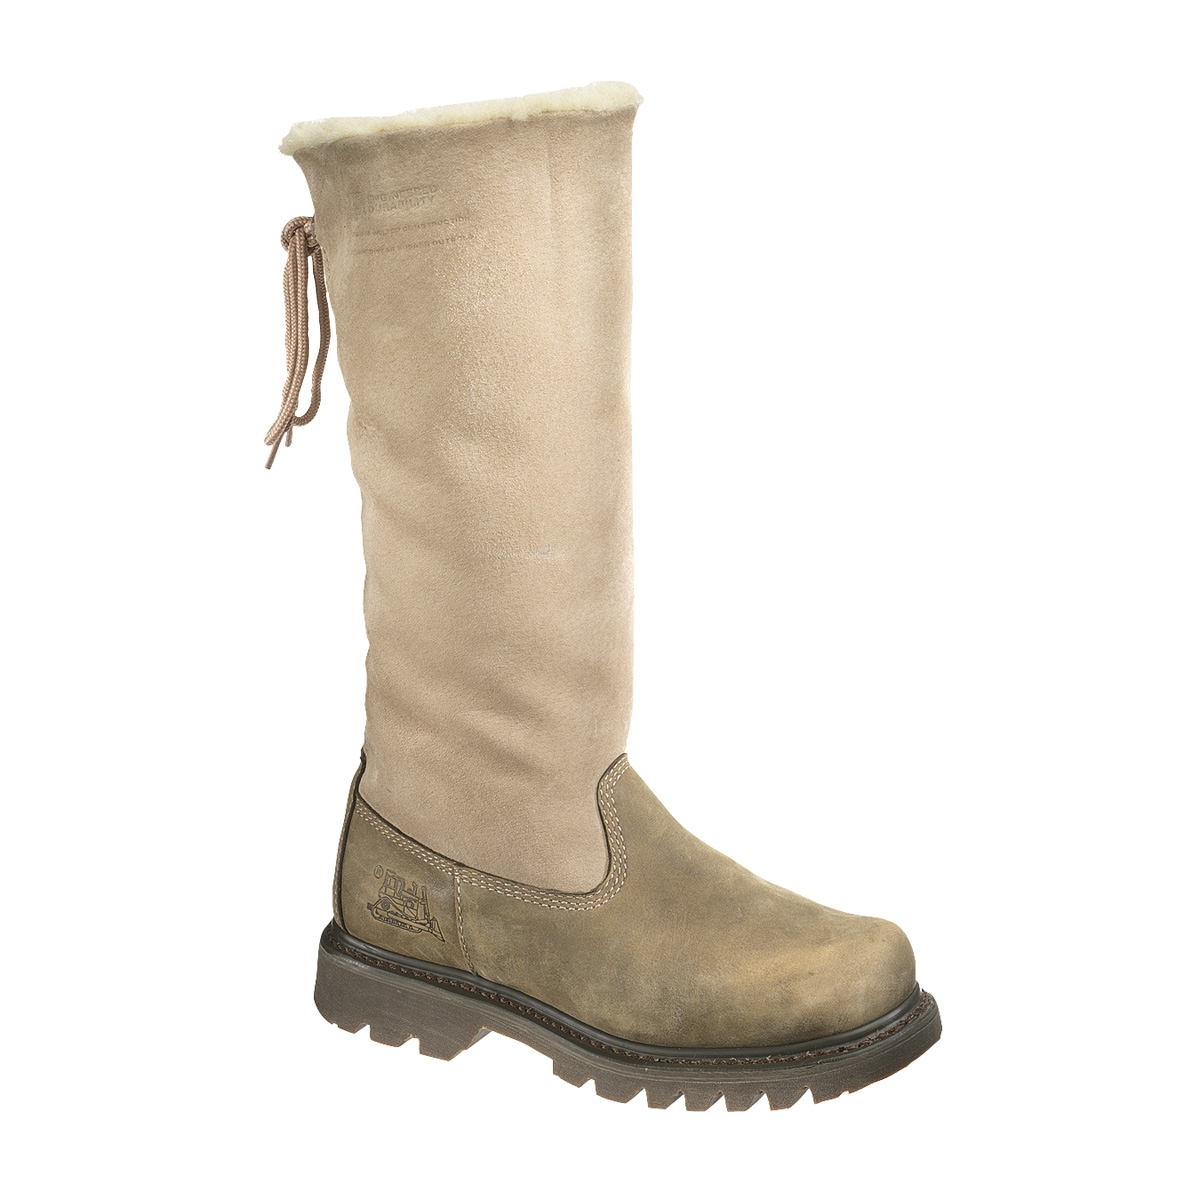 Amazing Caterpillar Boots Willow Womens Casual Leather Boots Ladies Size UK 4